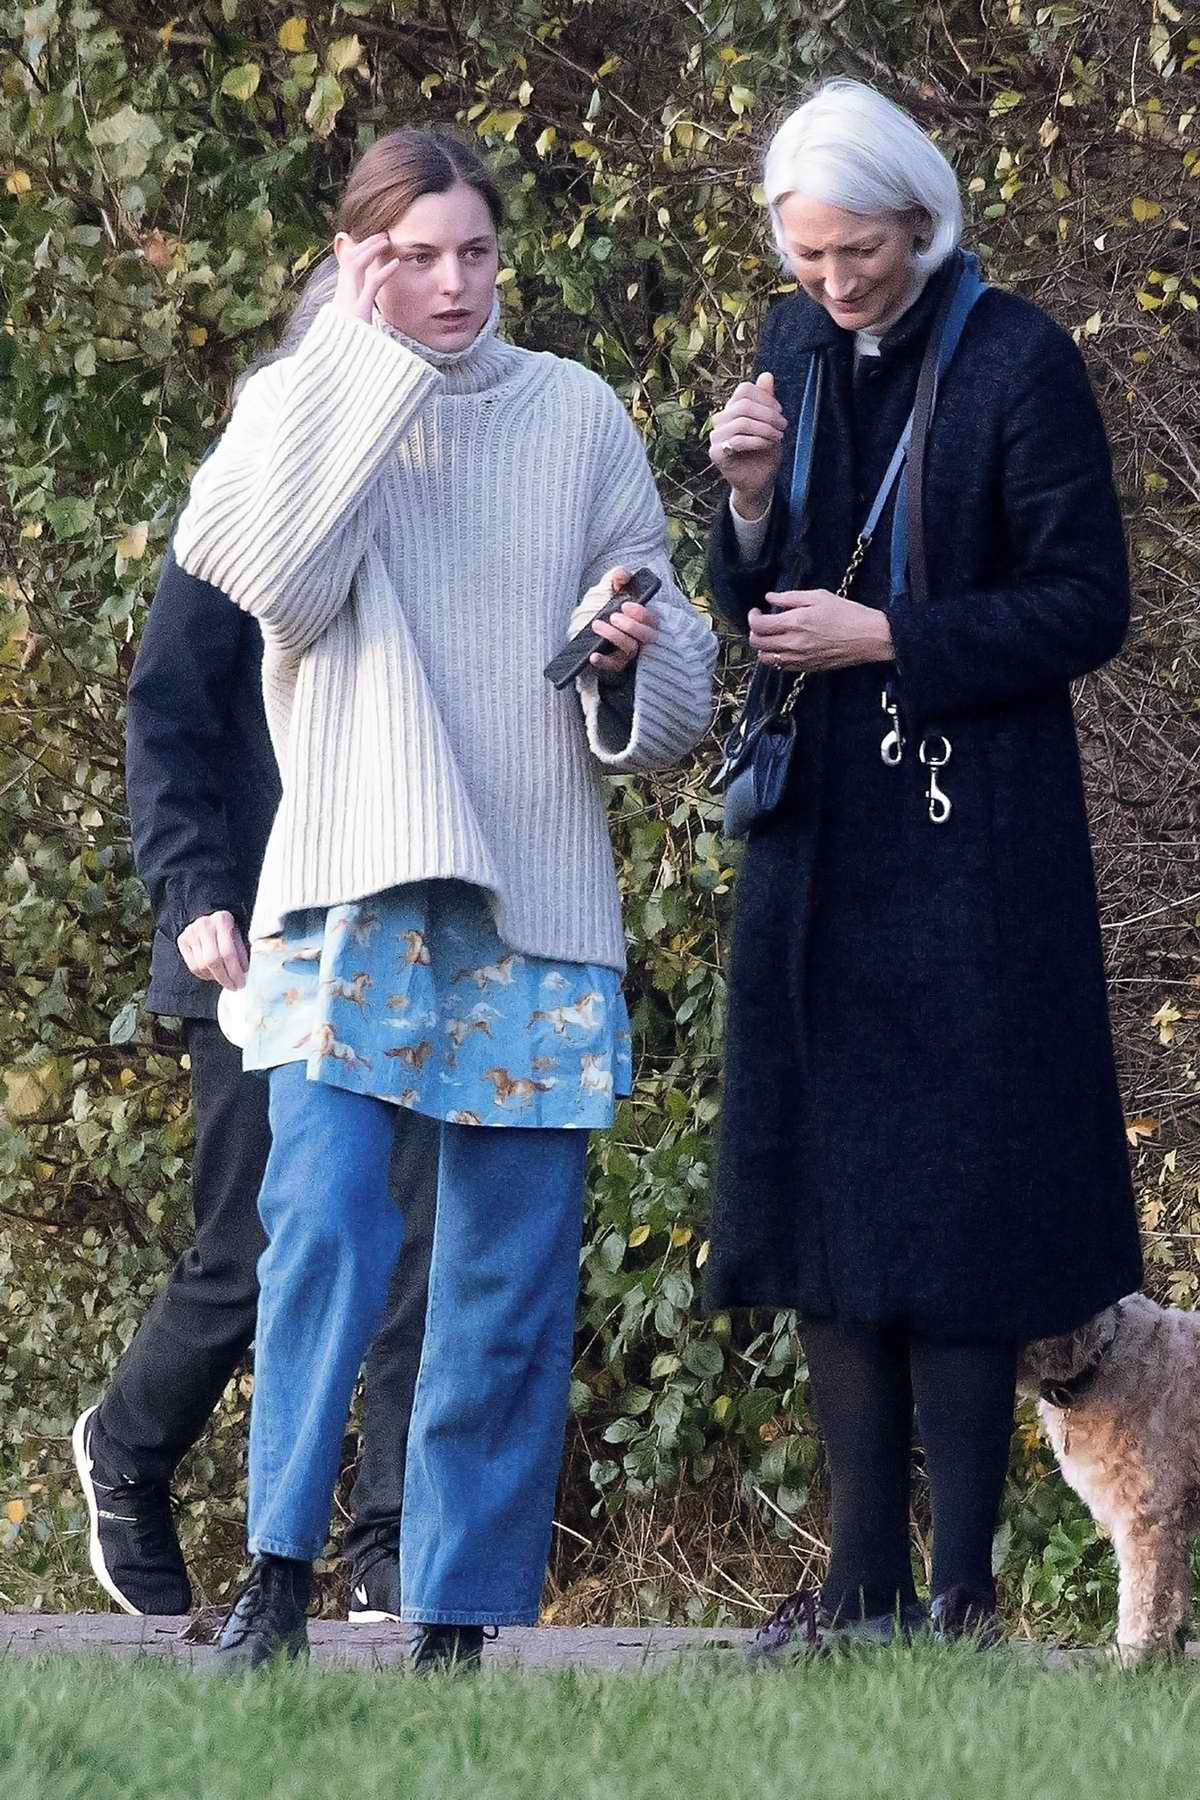 Emma Corrin wears an oversized sweater as she steps out to walk her dog at a local park in London, UK